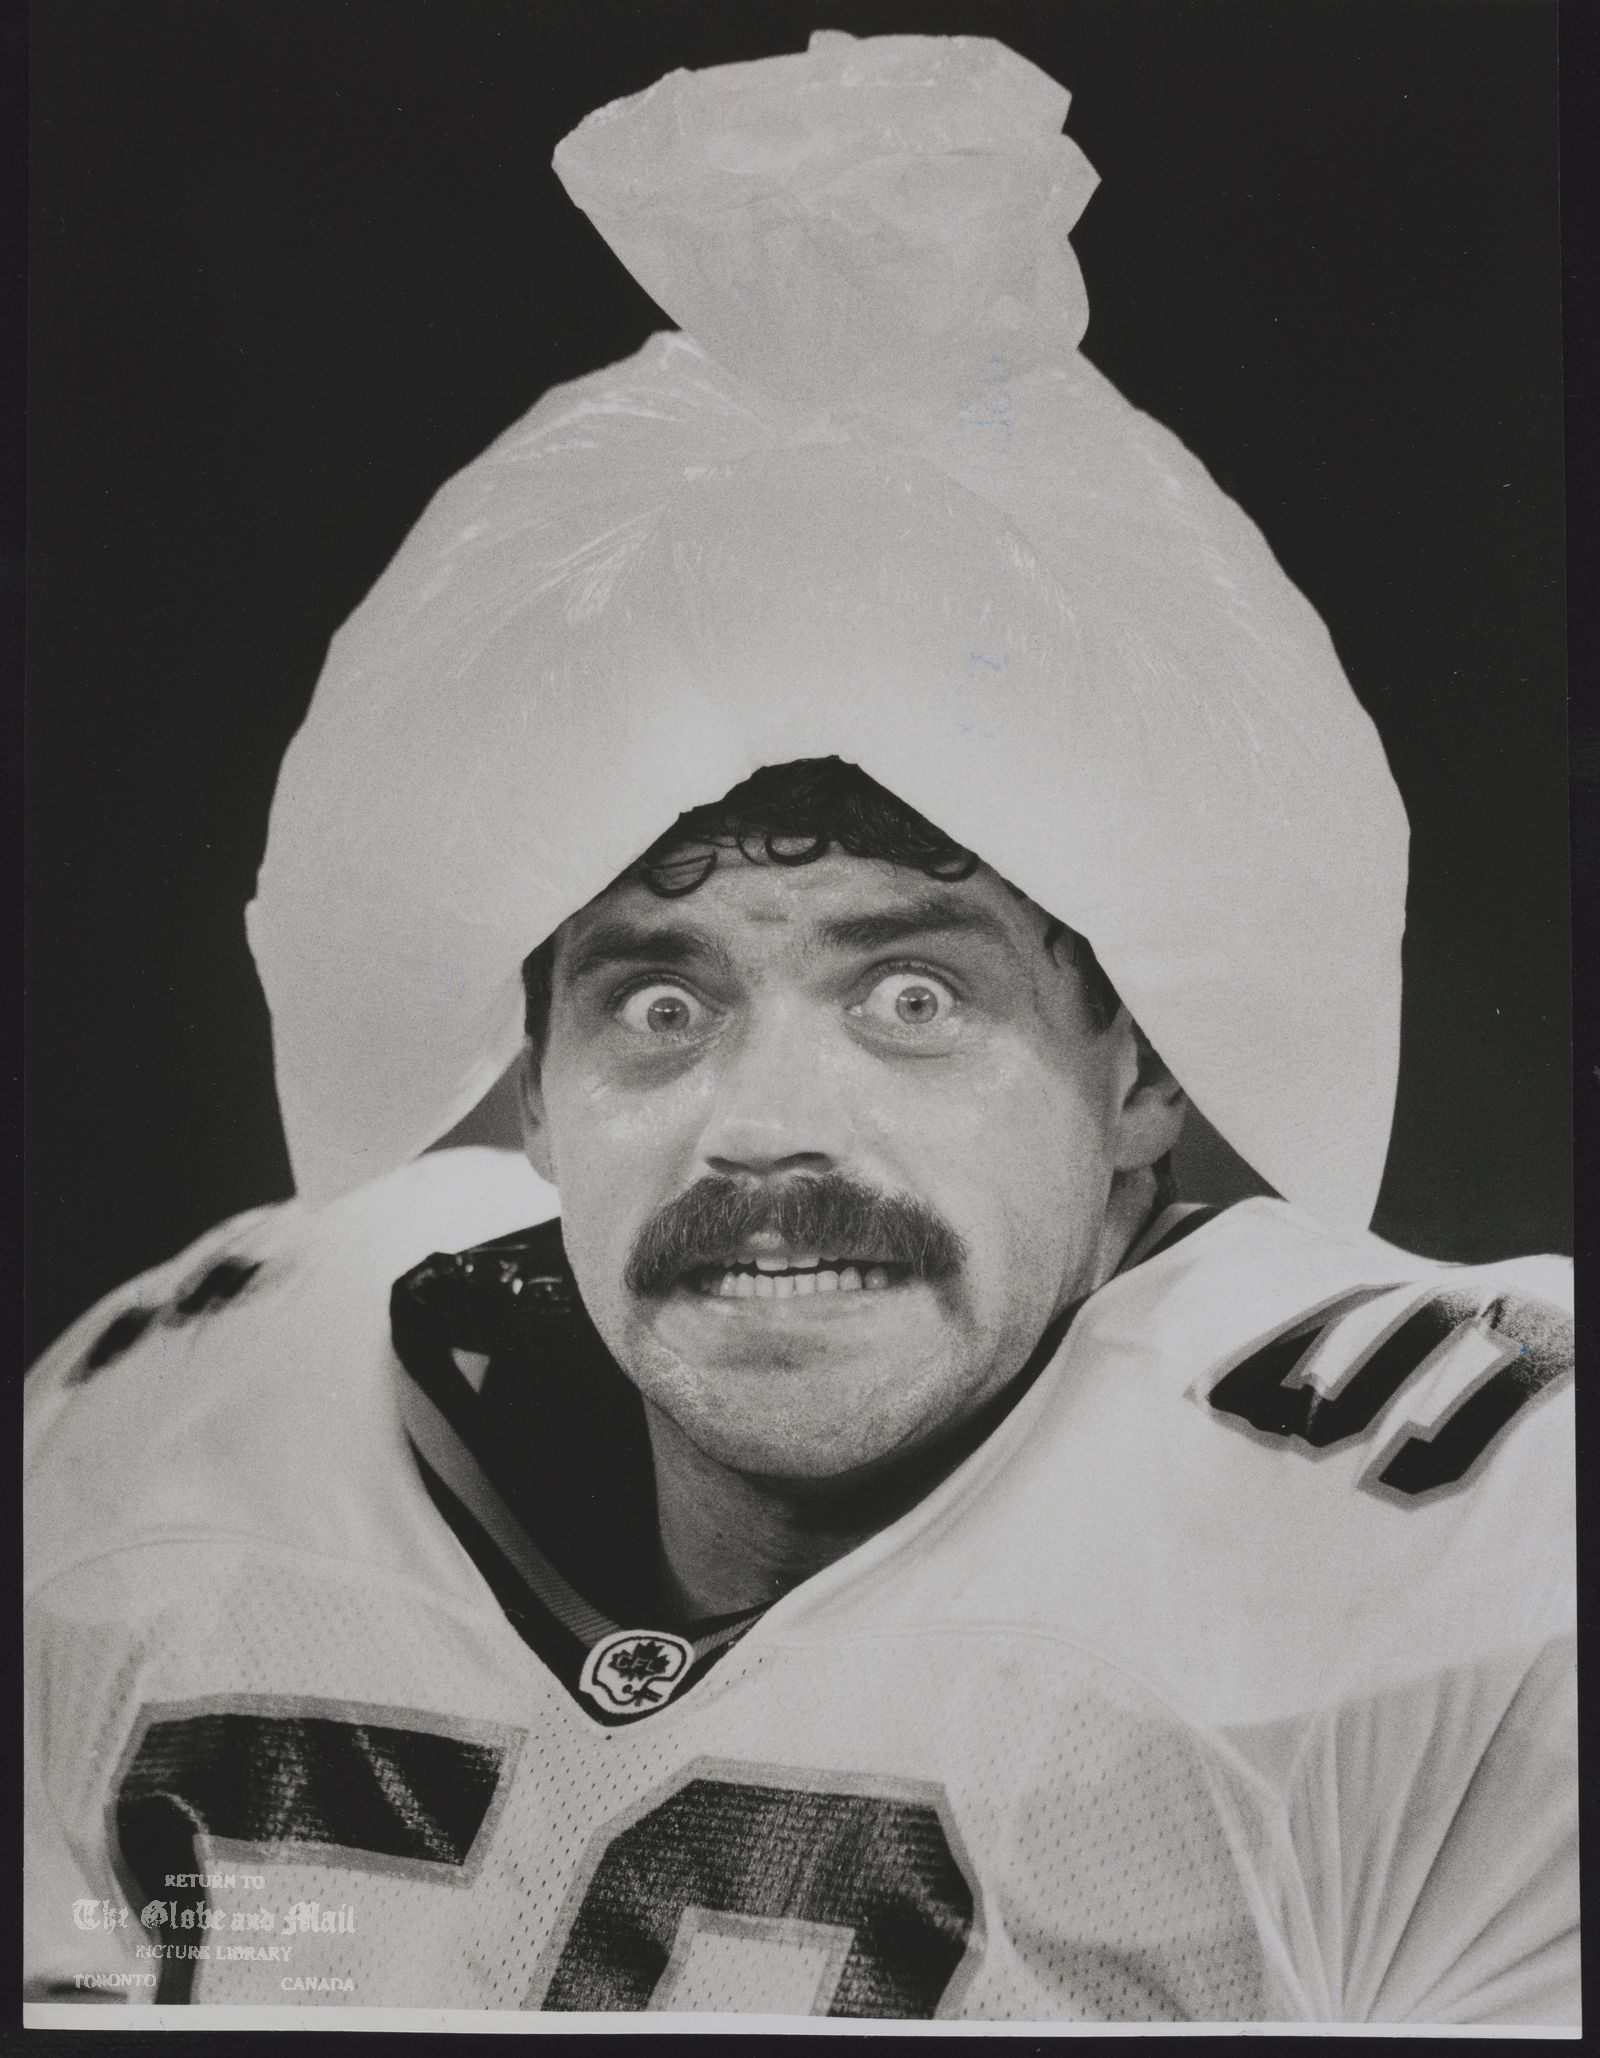 BRITISH COLUMBIA LIONS FOOTBALL TEAM BC LIONS' GUARD ROB SMITH TRIES TO BEAT THE HEAT AT THE SKYDOME LAST NIGHT BY PUTTING AN ICE BAG ON HIS HEAD. THE LIONS PUT THE HEAT ON THE TORONTO ARGONAUTS, BEATING THEM 40-27.